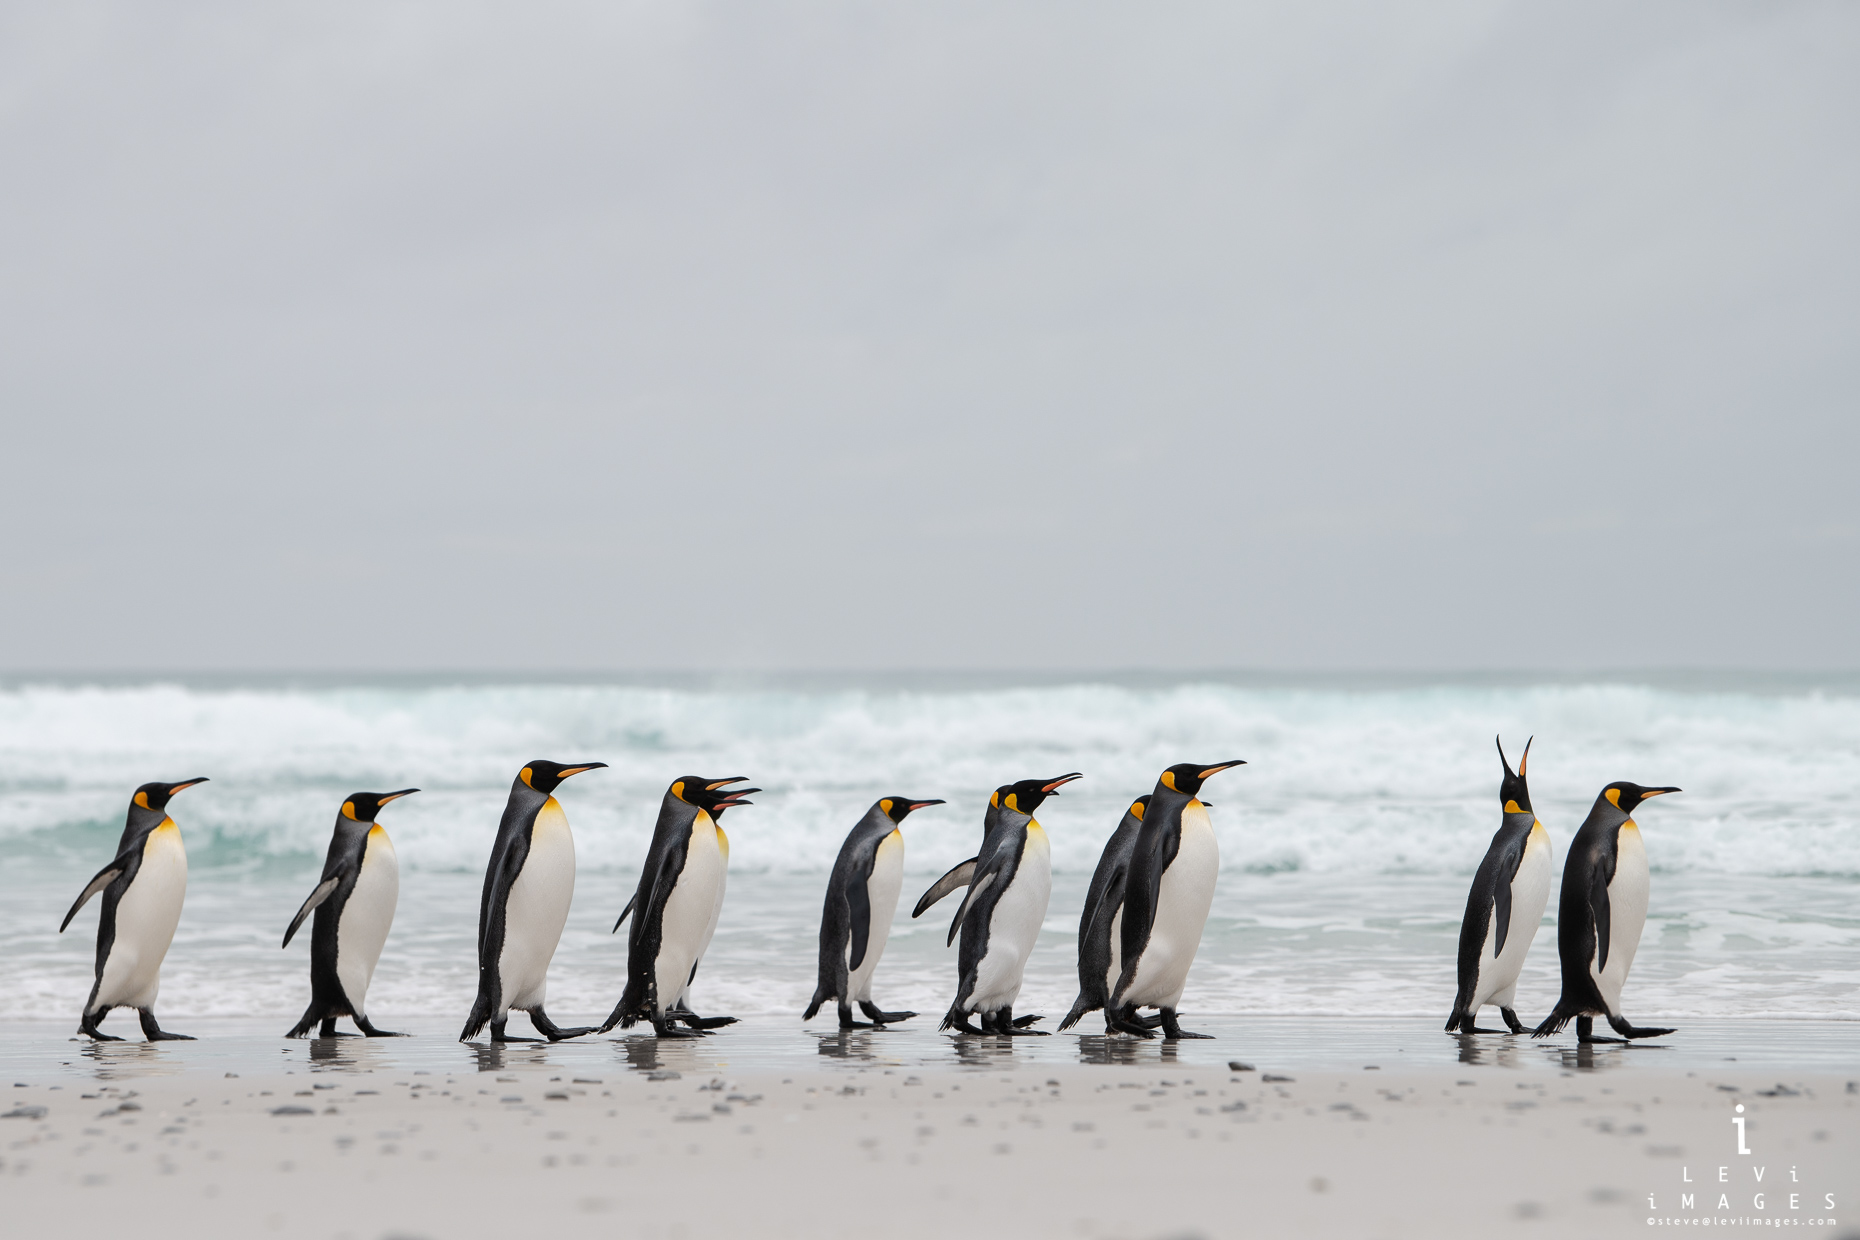 King penguins (Aptenodytes patagonicus) walking along beach. Volunteer Point, Falkland Islands